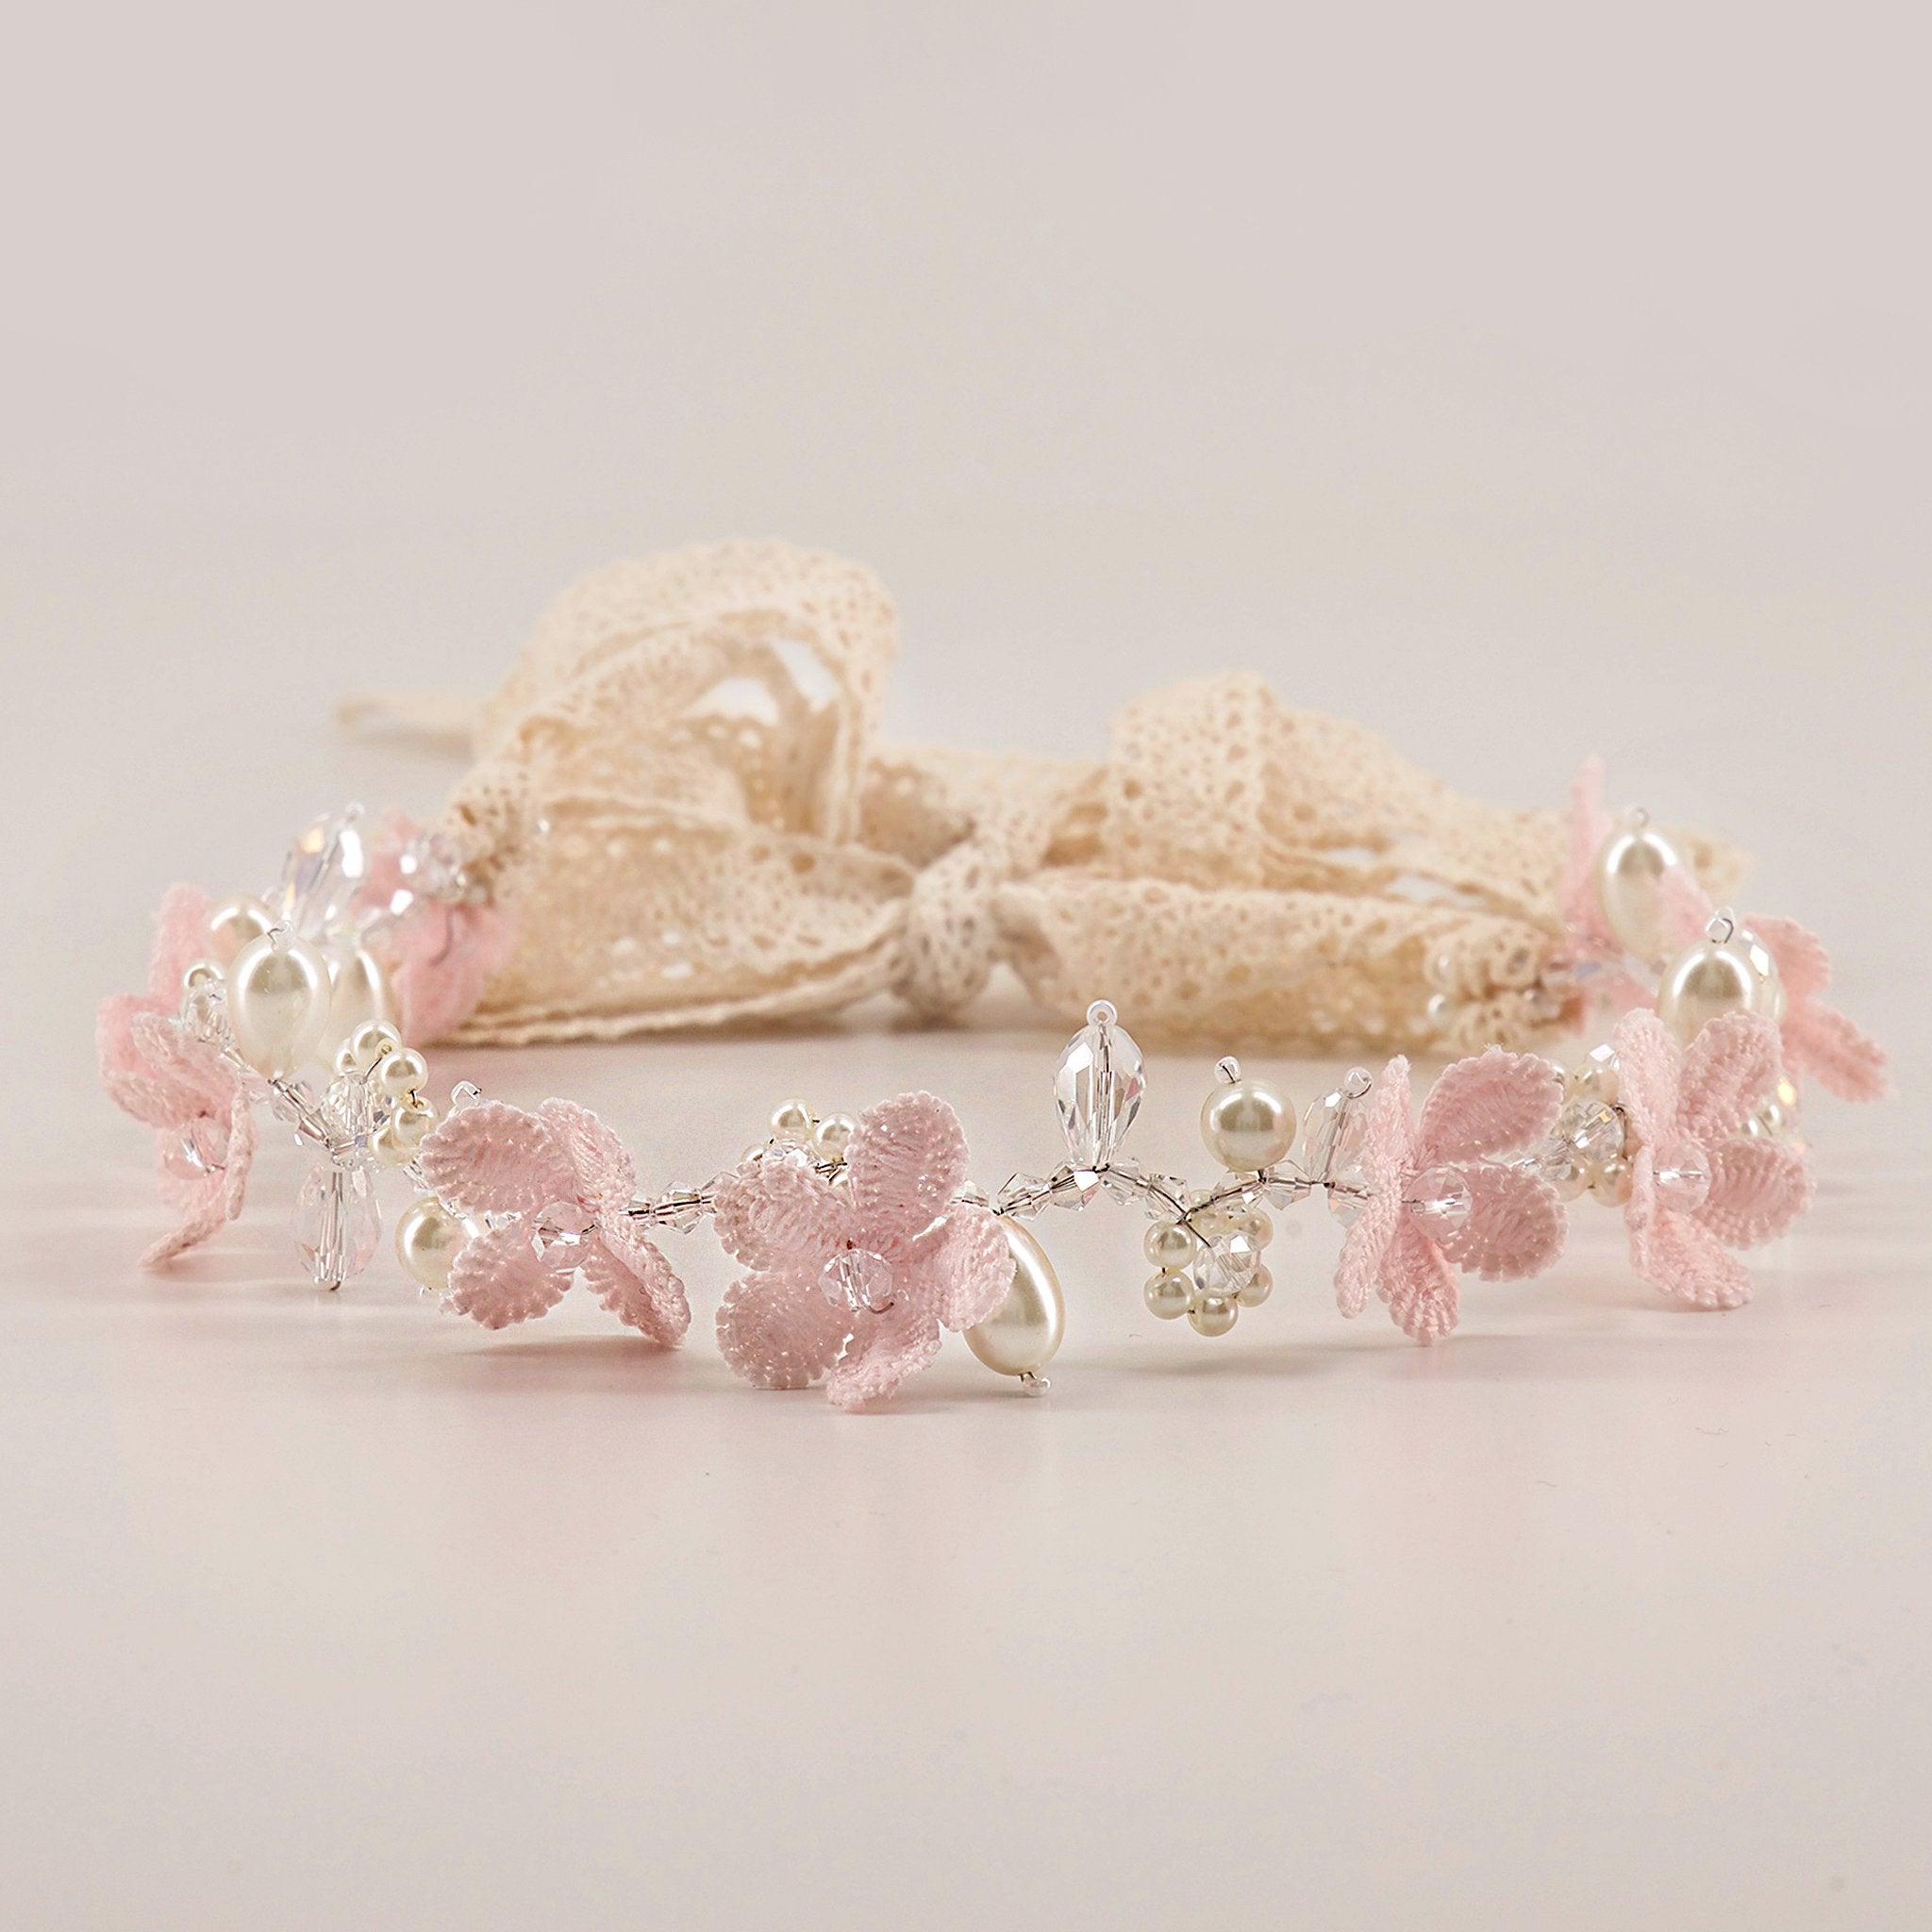 The English Primrose Flower Designer Girls Hair Garland Garland Sienna Likes To Party